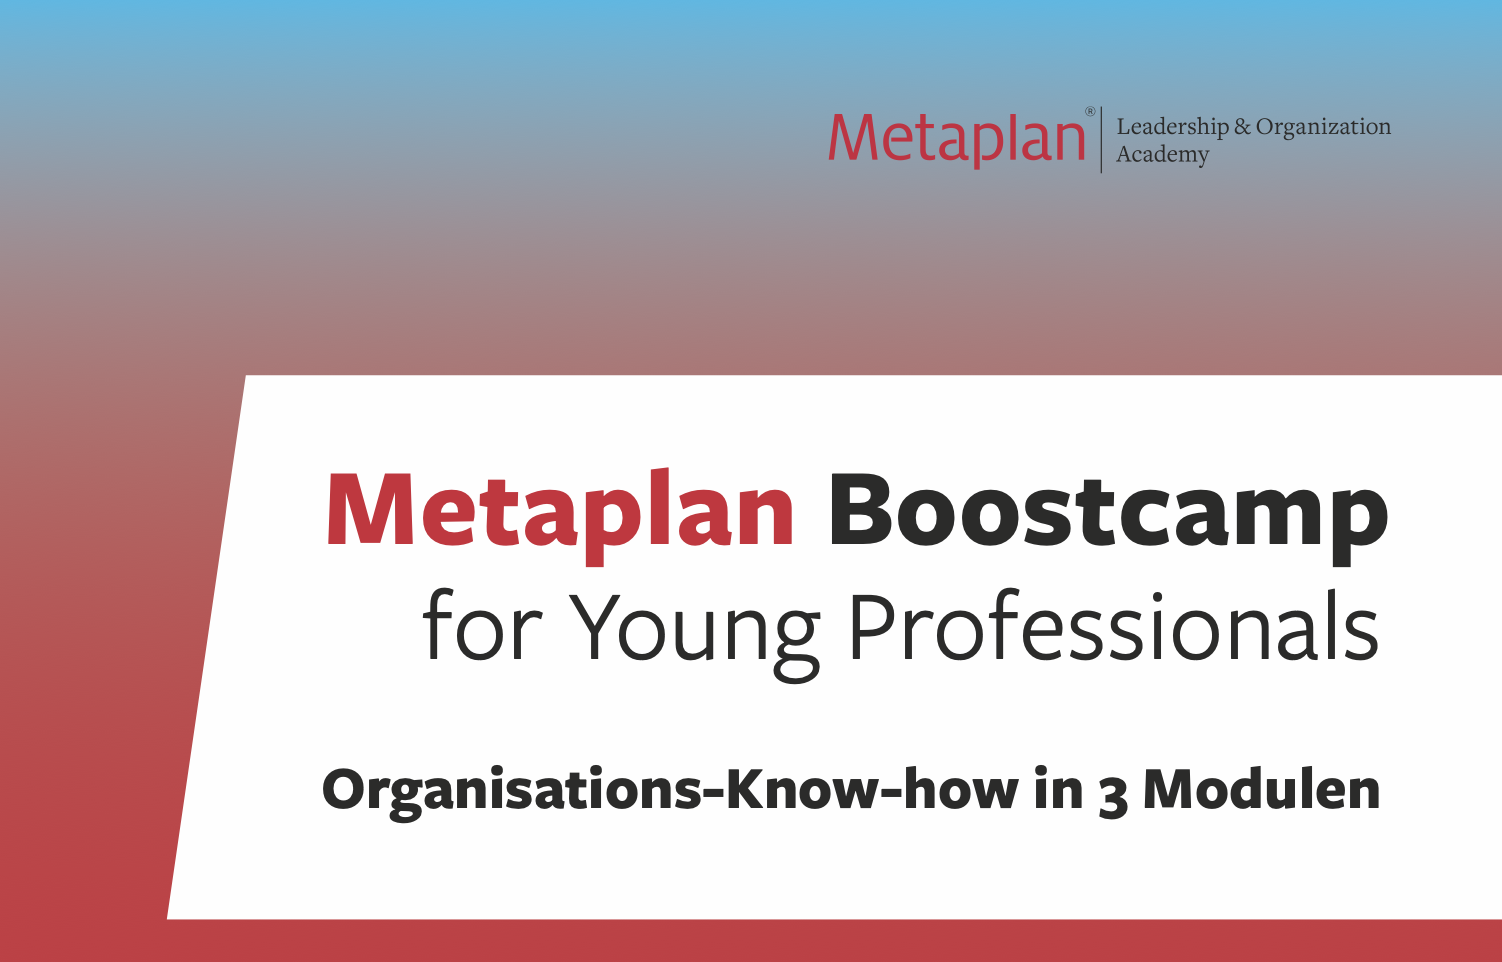 Metaplan Boostcamp